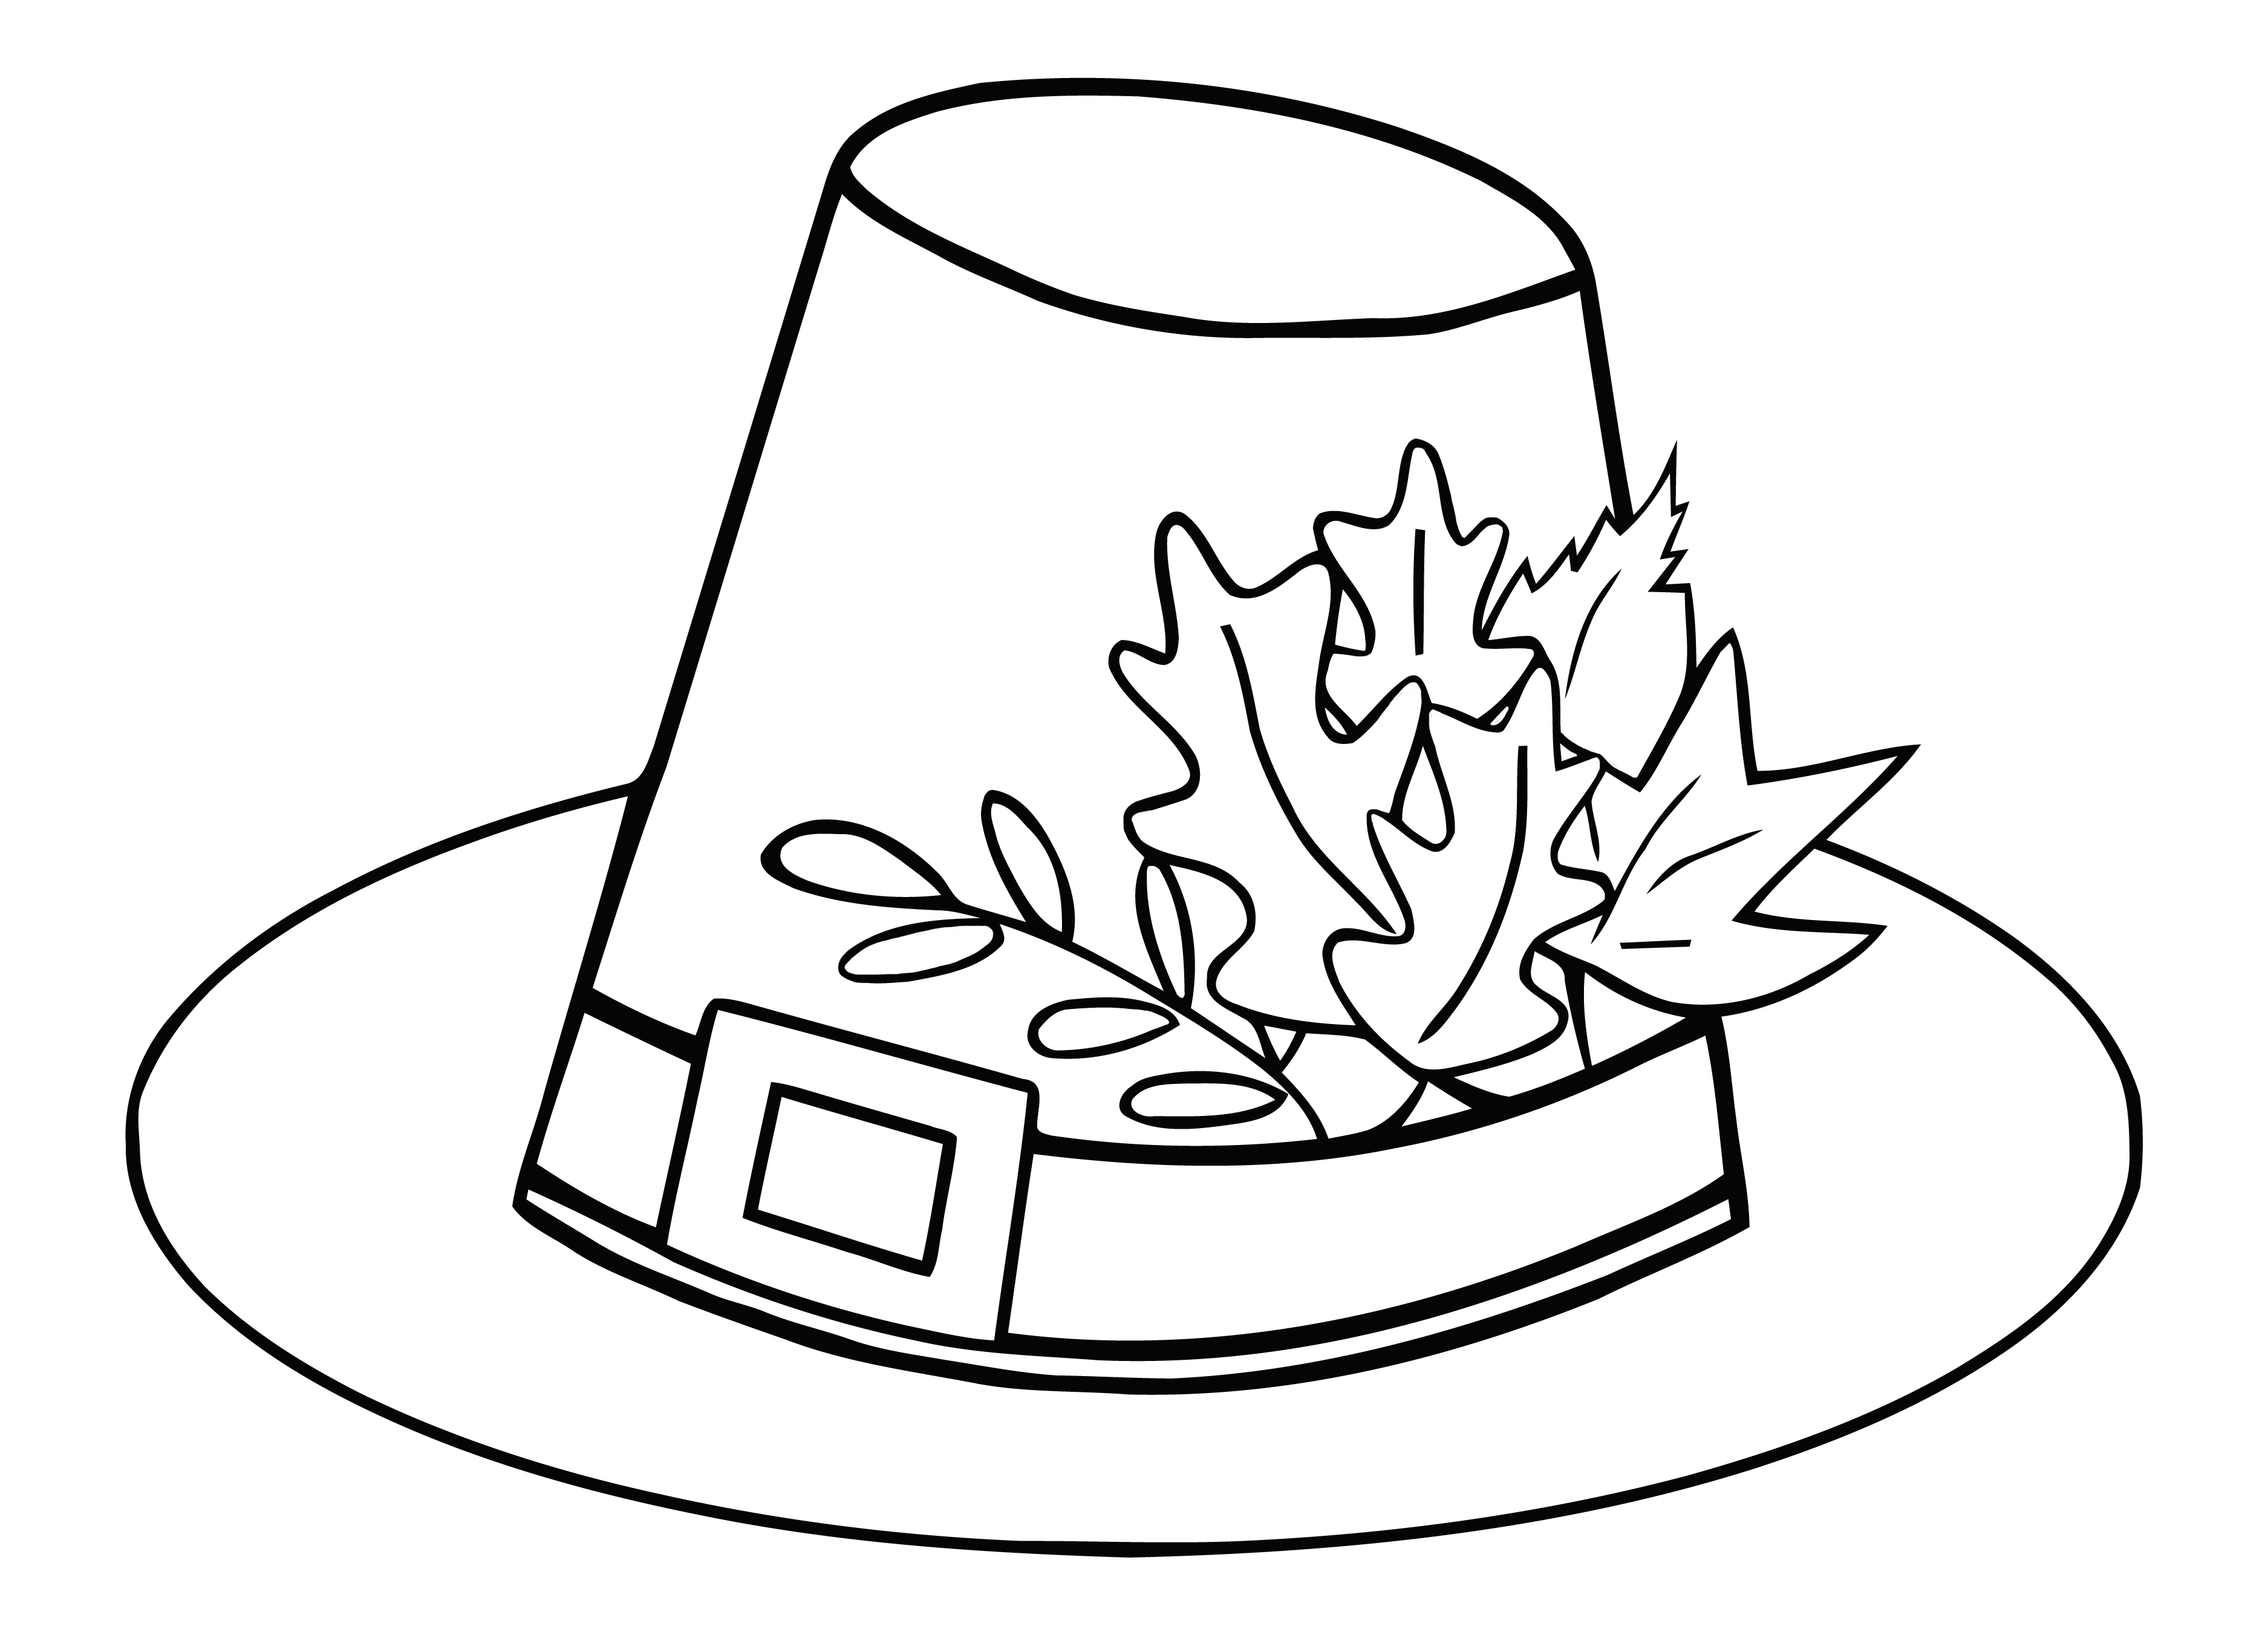 3750x2708 Outstanding Fall Leaves Clip Art Coloring Pages Page